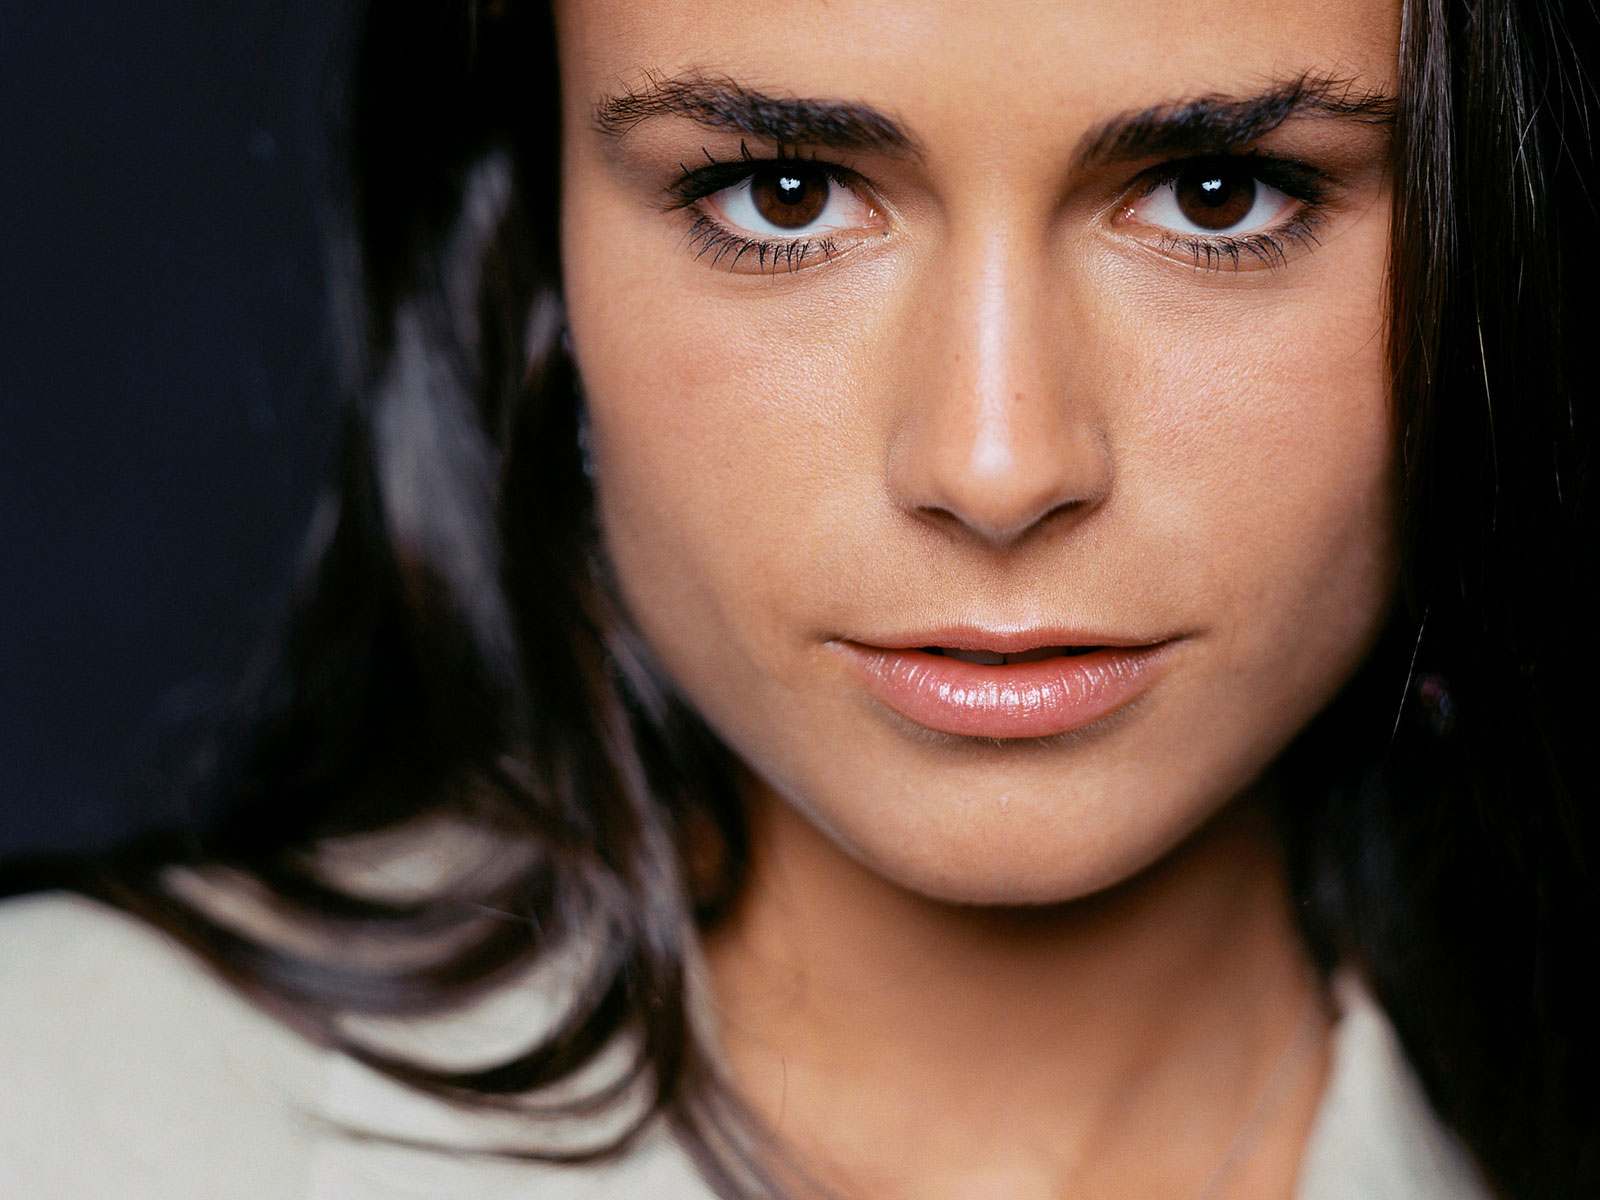 jordana brewster images jordana hd wallpaper and background photos